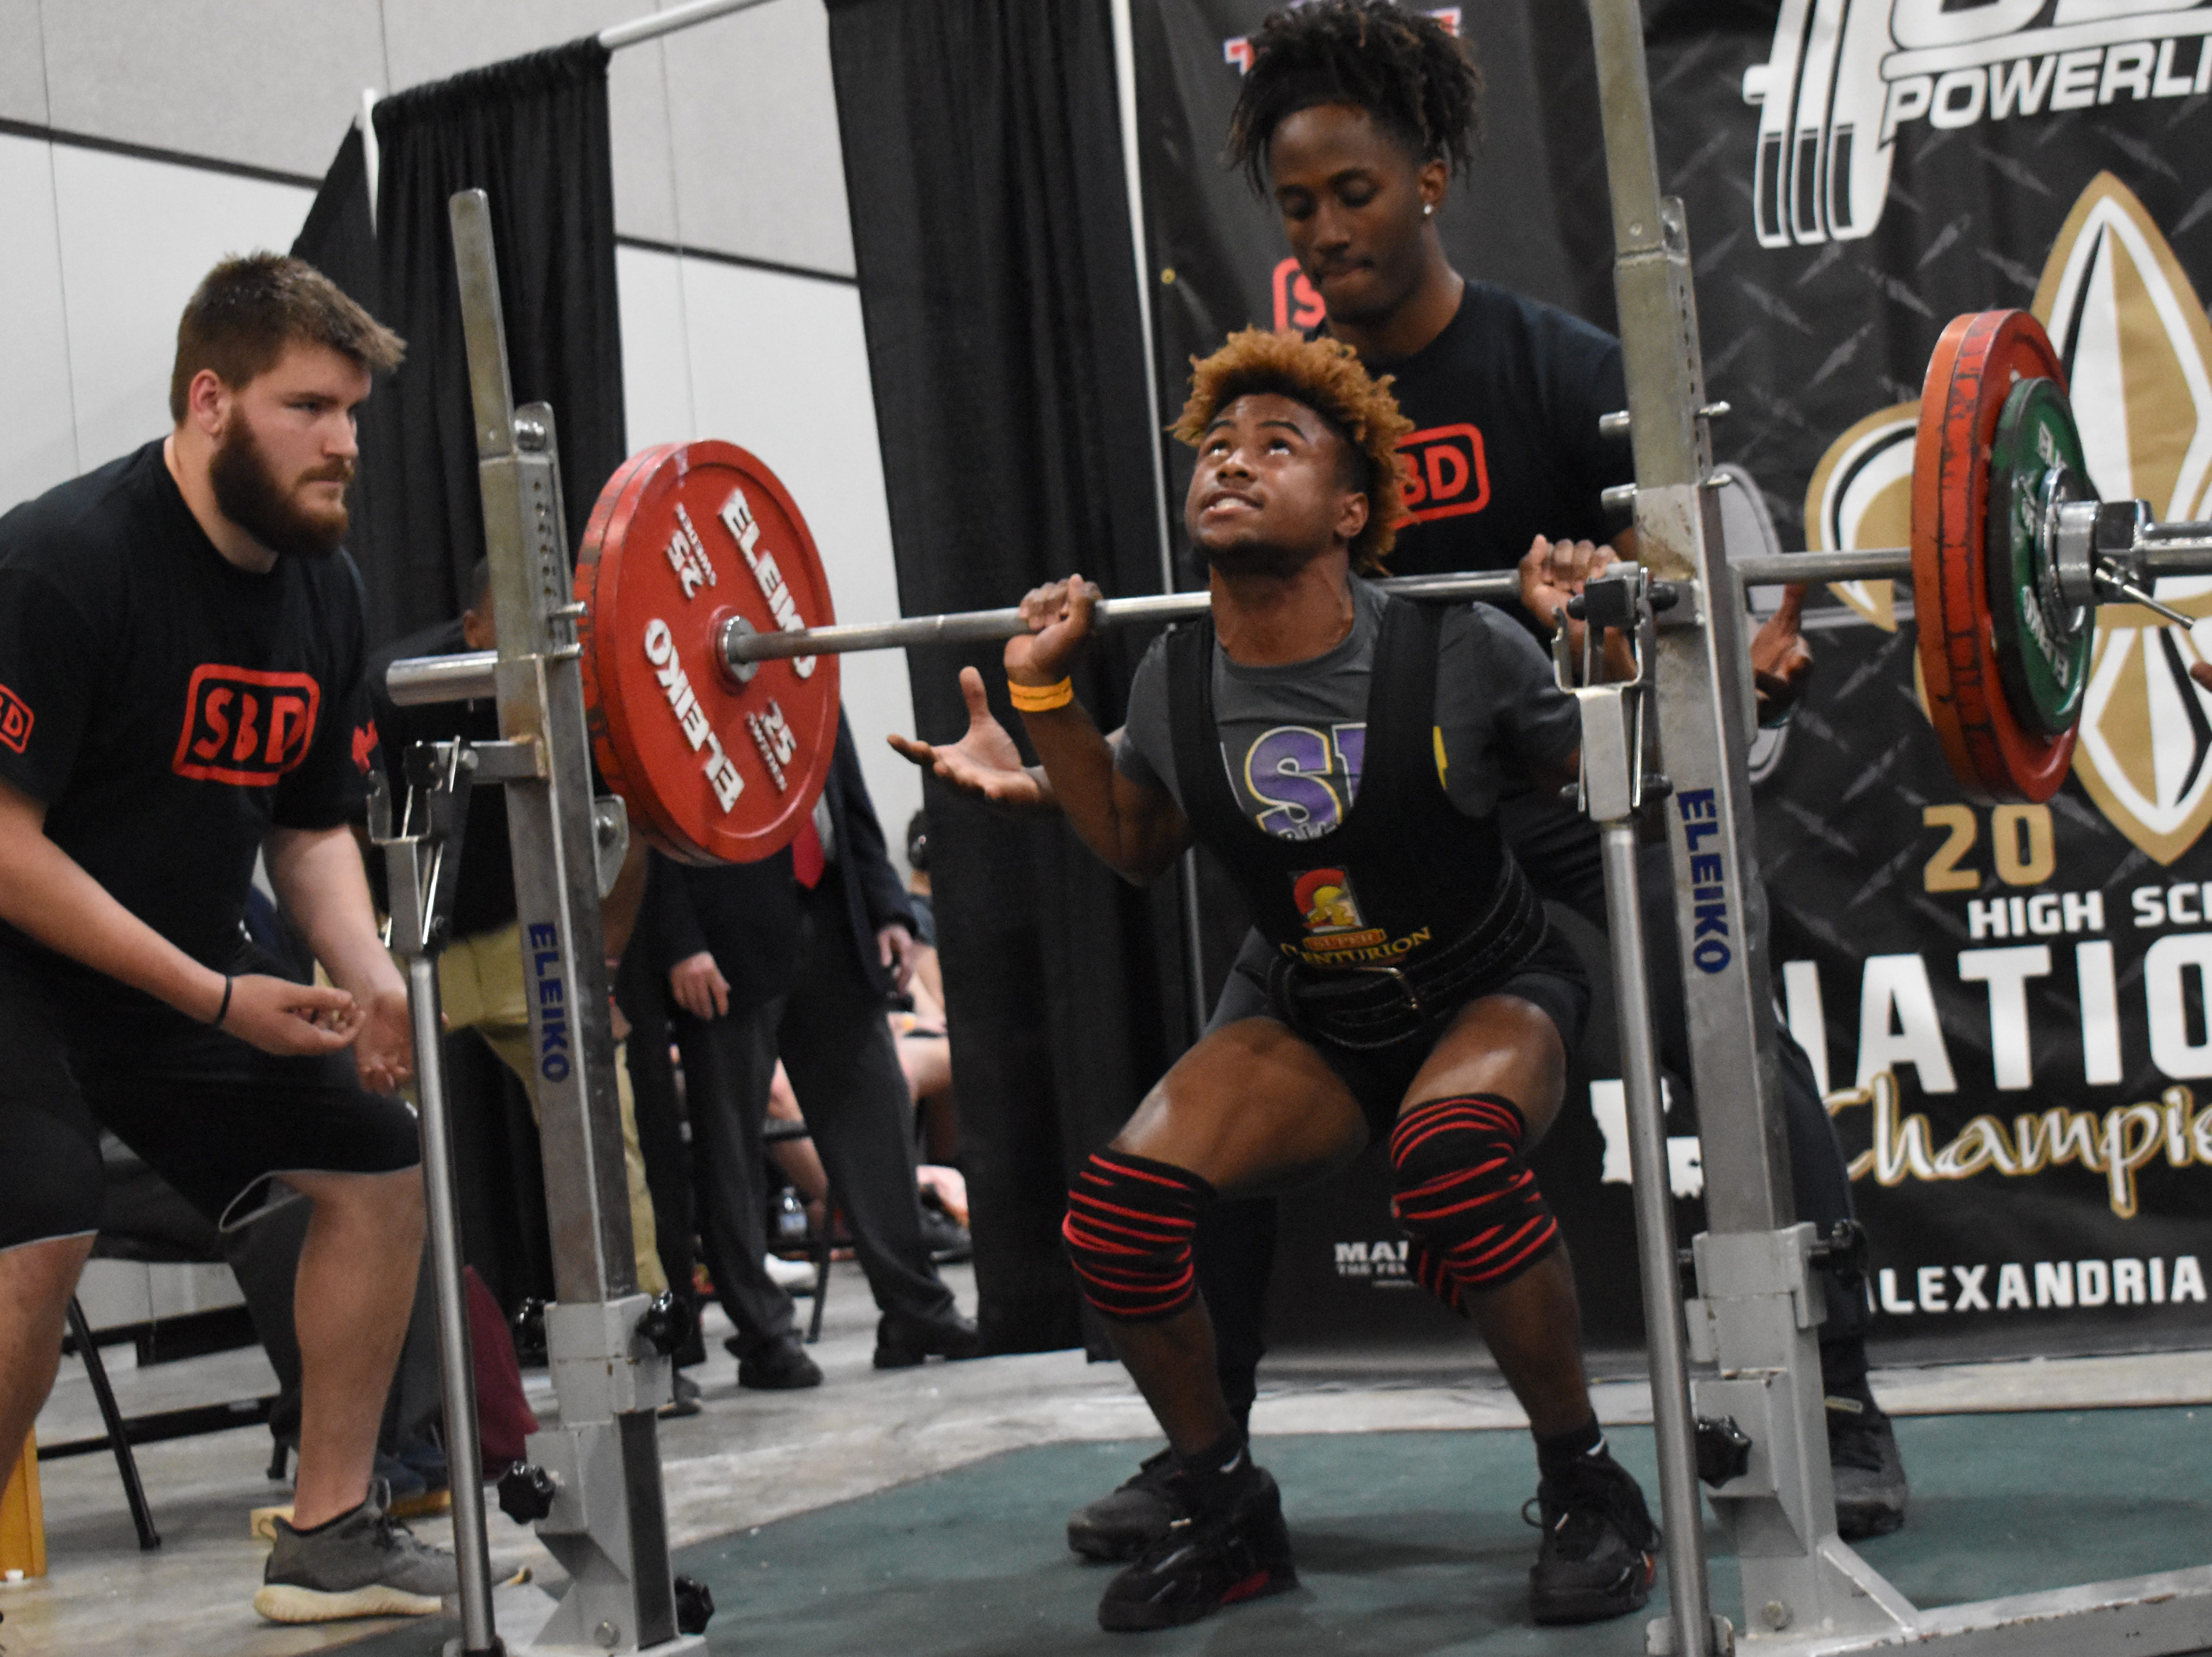 Freddie Price of Alexandria Senior High School performs a squat in the USA Powerlifting High School National Championships held Friday, March 29, 2019. The championships, equipped and raw, are being held at the Randolph Riverfront Center in downtown Alexandria with high school powerlifters from across the country competing in the four-day event. Powerlifters from local schools are also competing.